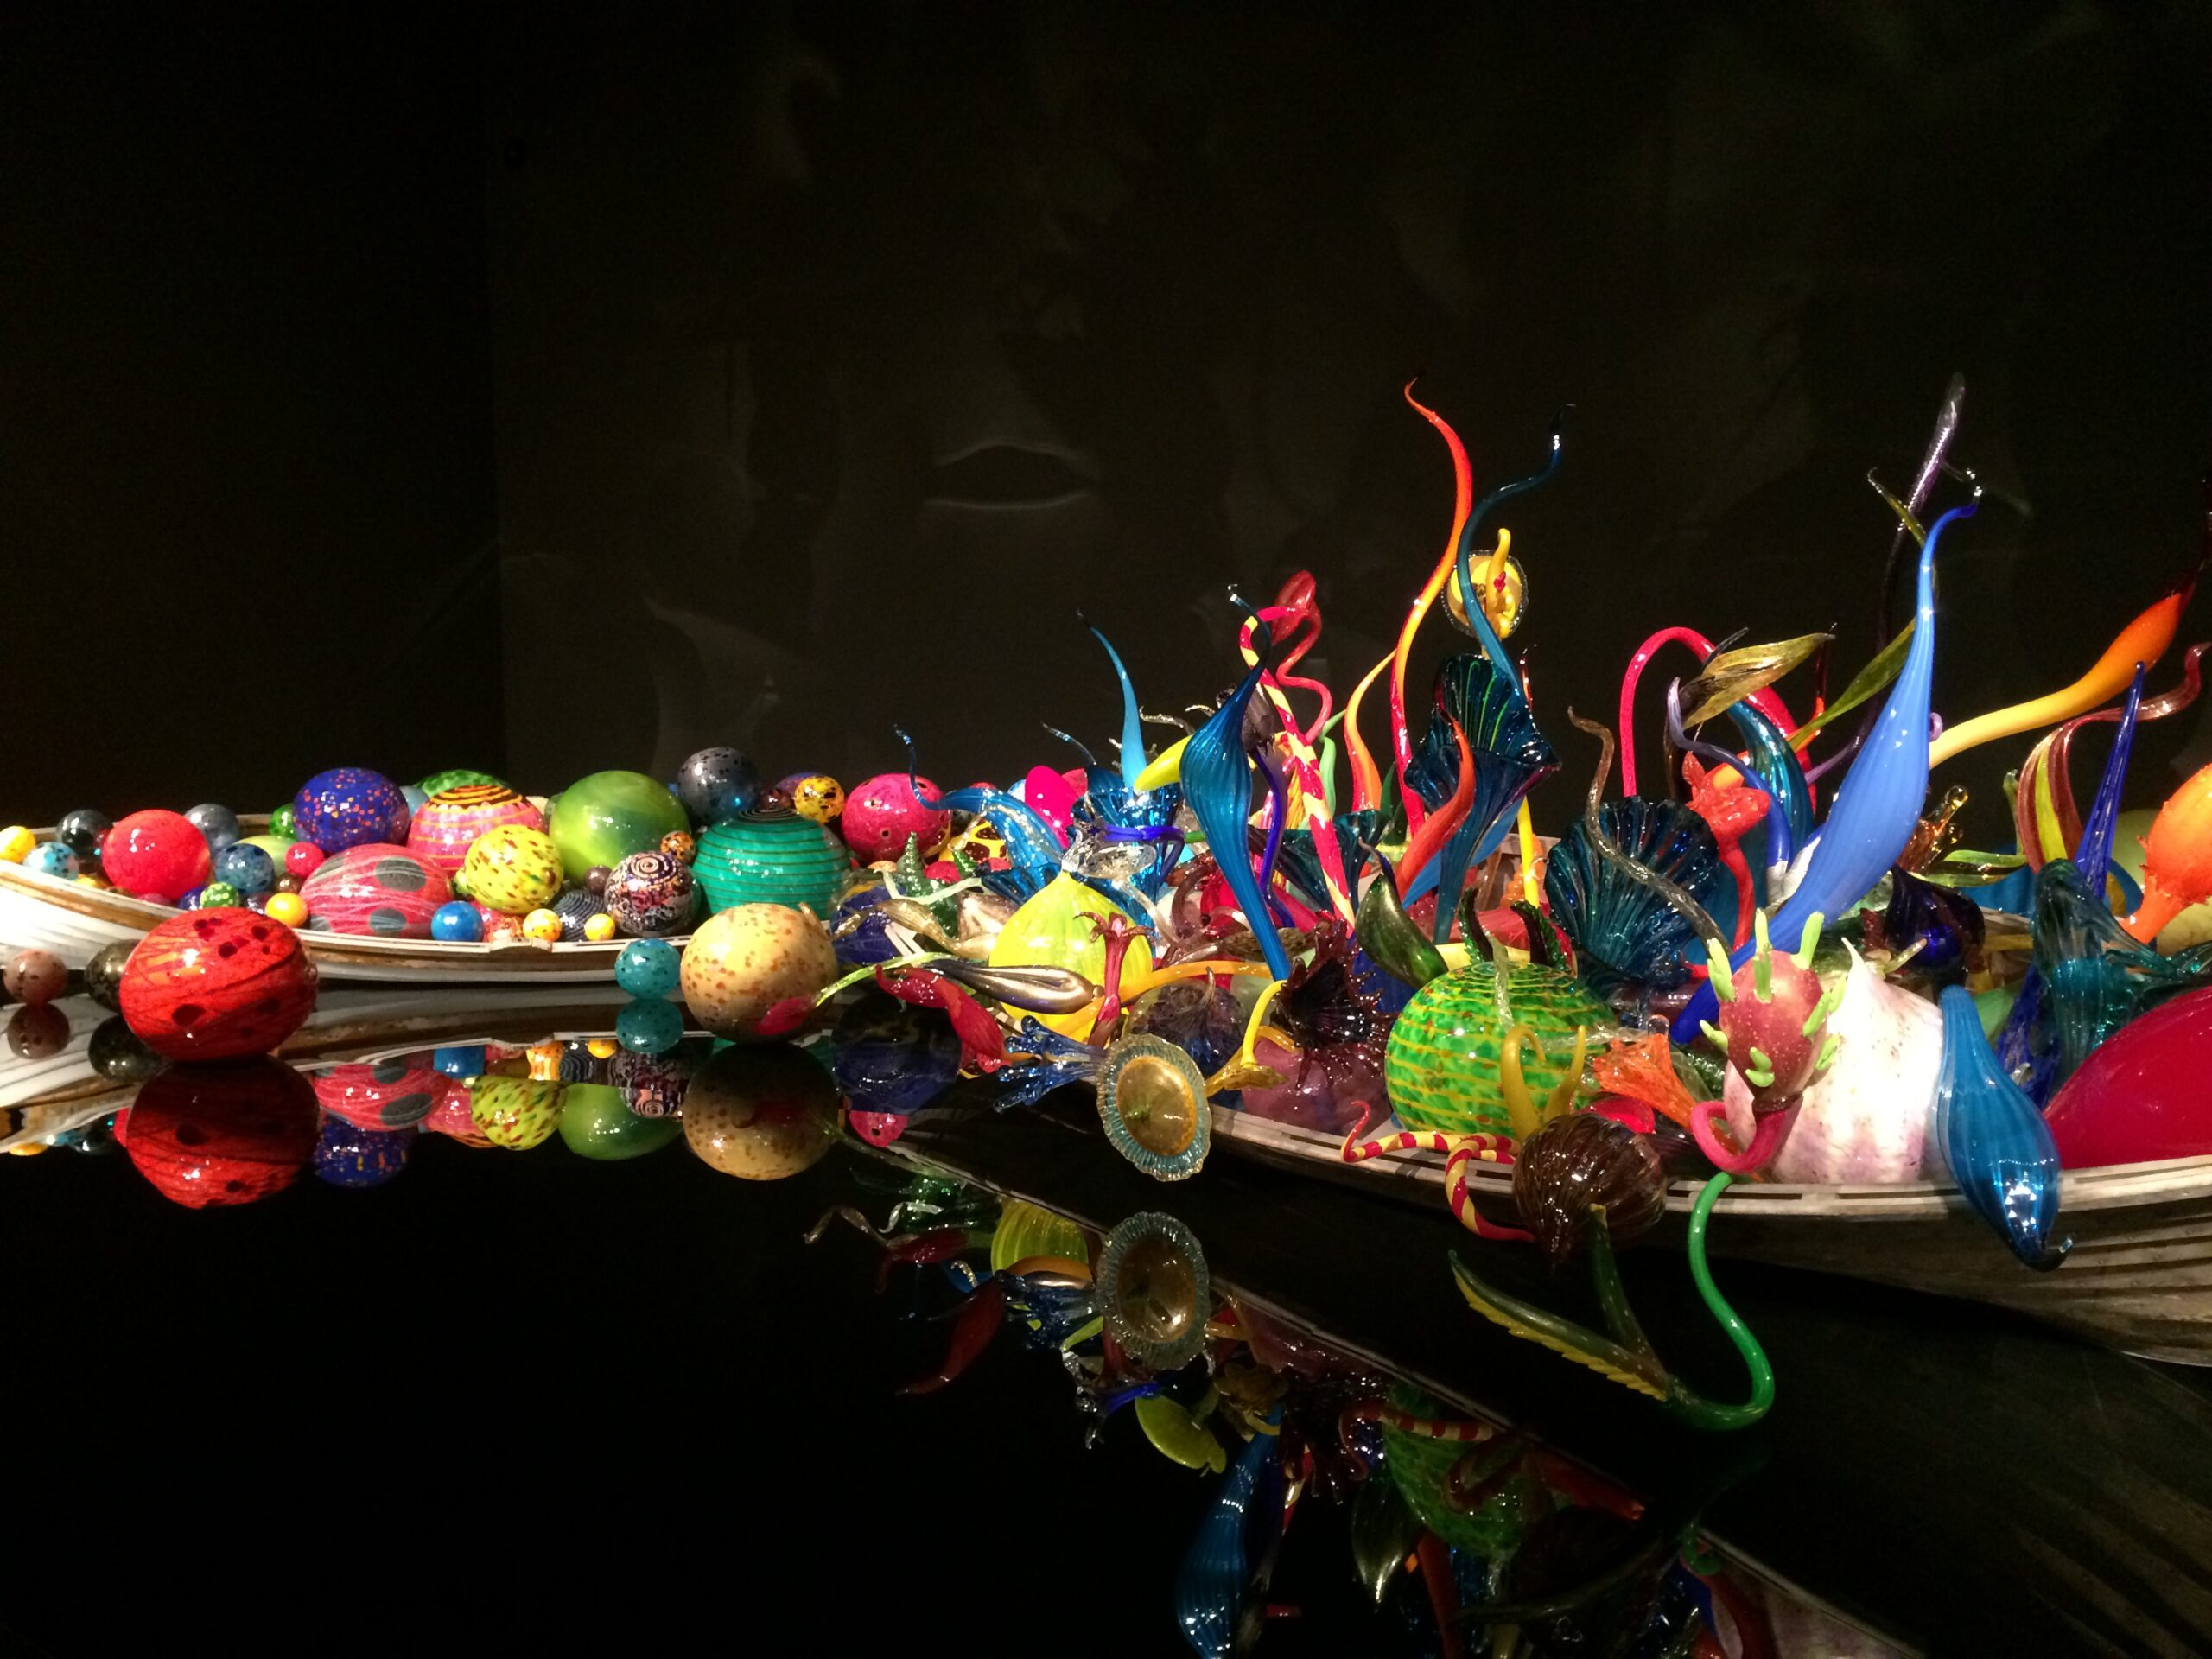 Chihuly's glass